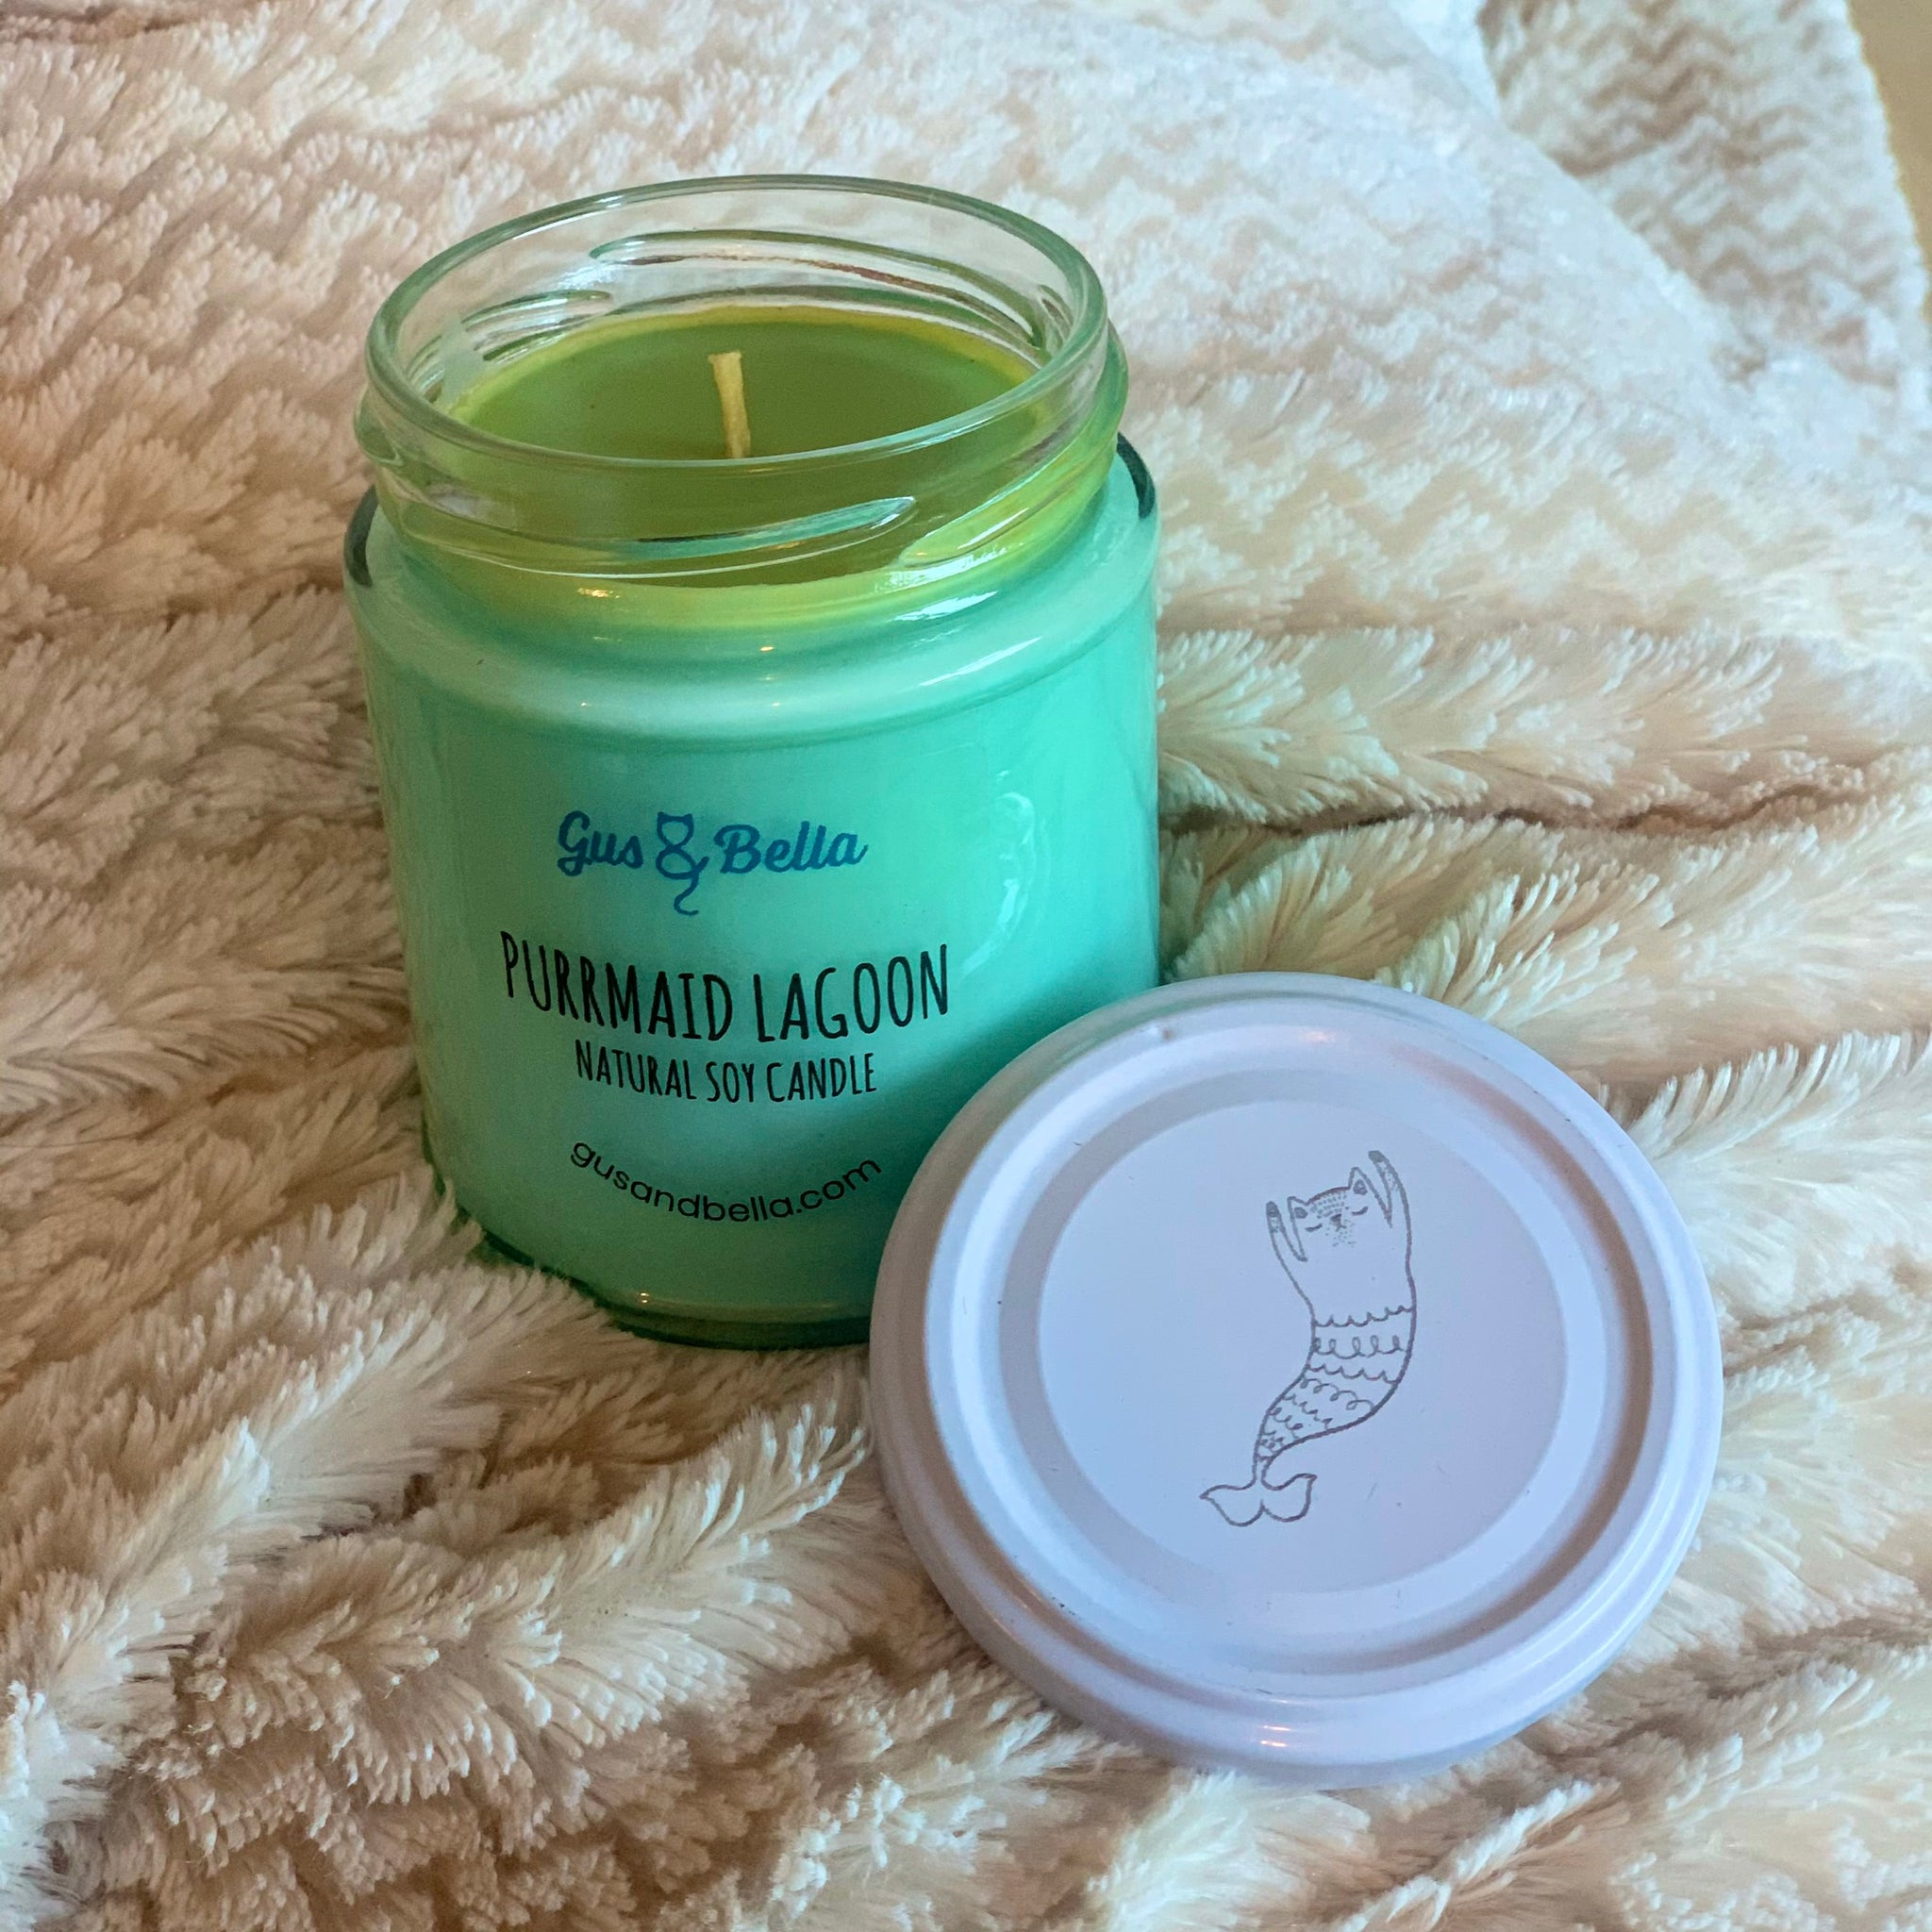 Gus & Bella Soy Wax Candle